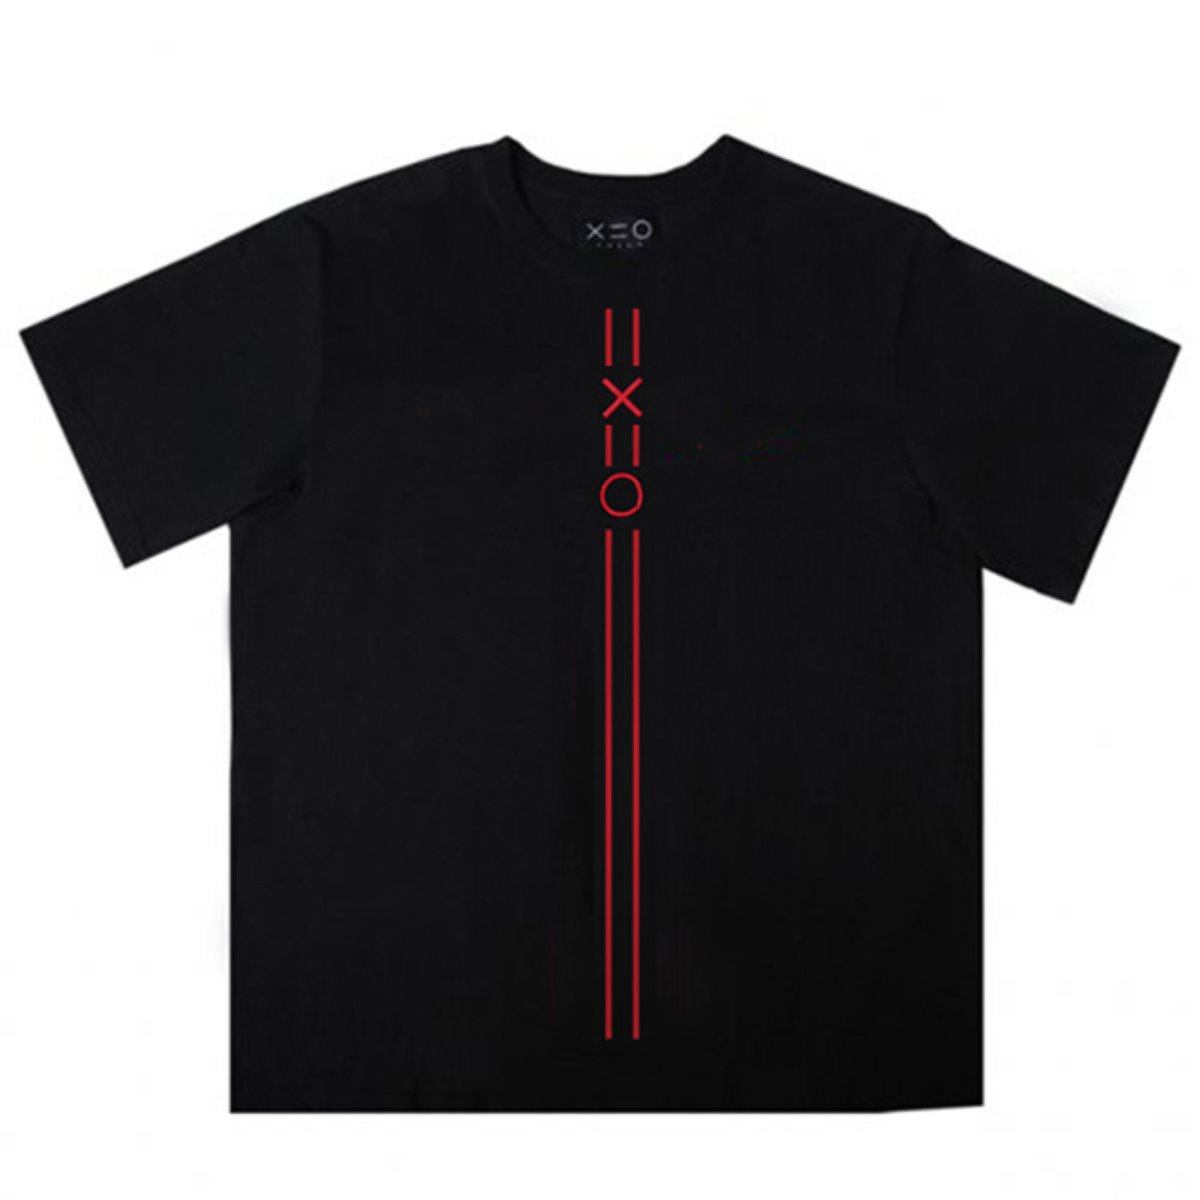 BLACK DOZOH RED EQUAL V LINE&LOGO T-SHIRTS 2